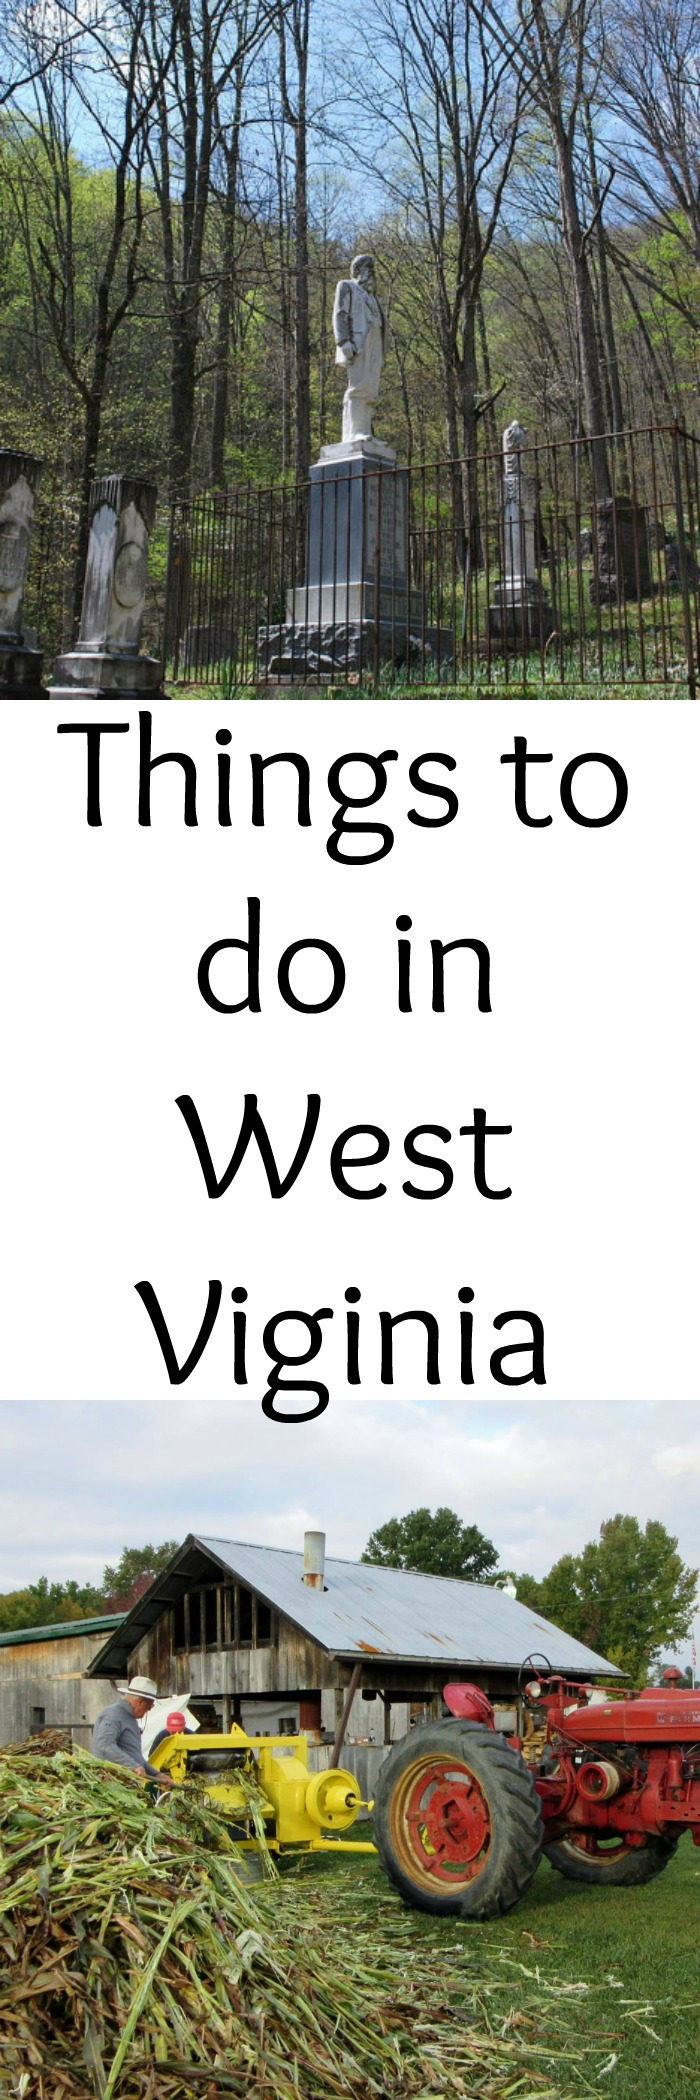 Looking for things to do in West Virginia? If you are looking for more to do that look at the beautiful nature, here is a small list of things to do.